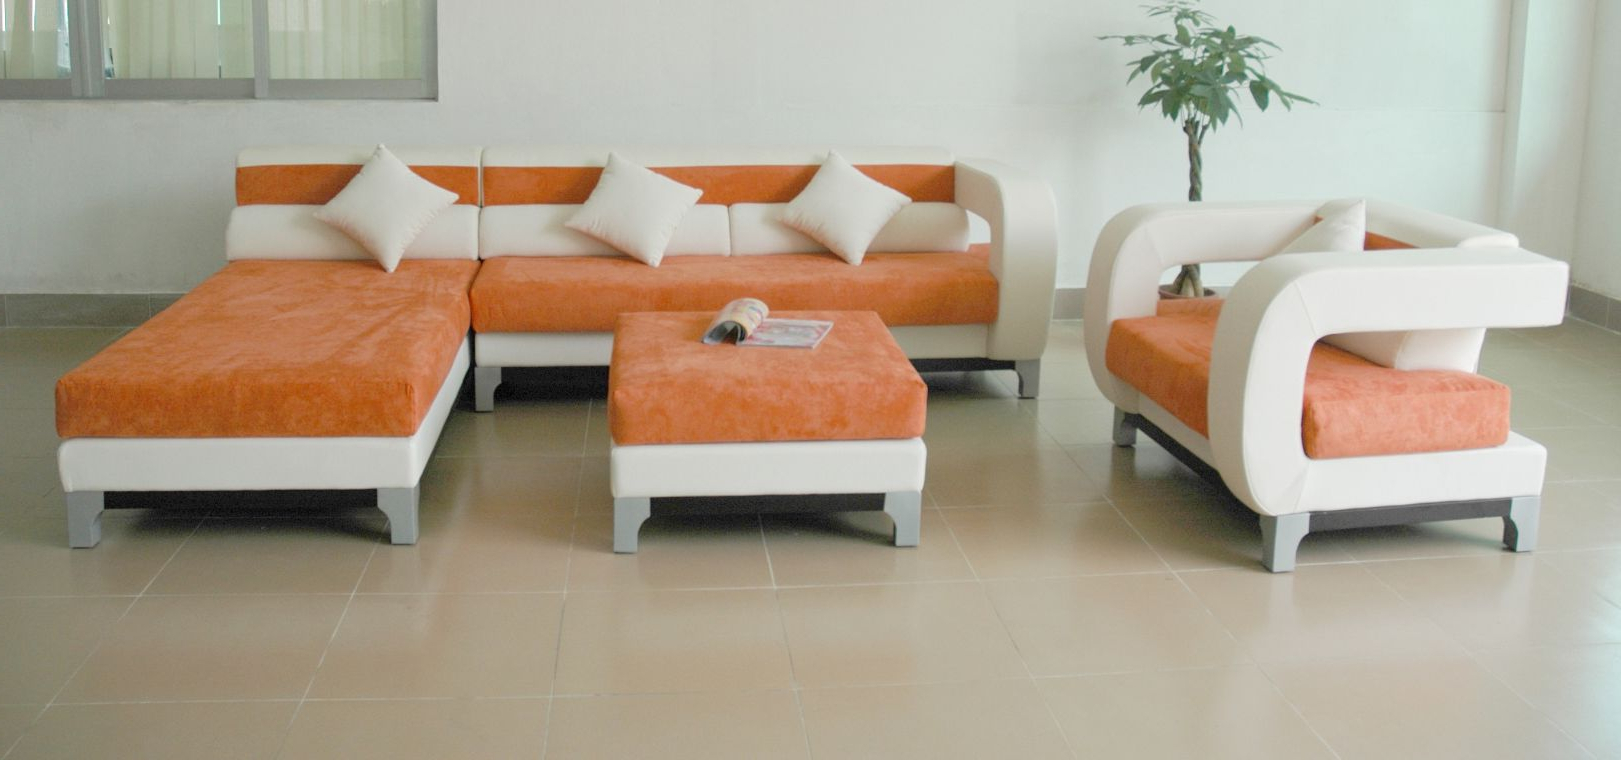 Contemporary Shape Of Italian Sofa With Combination Of White And Throughout Current Orange Sofa Chairs (Gallery 8 of 20)